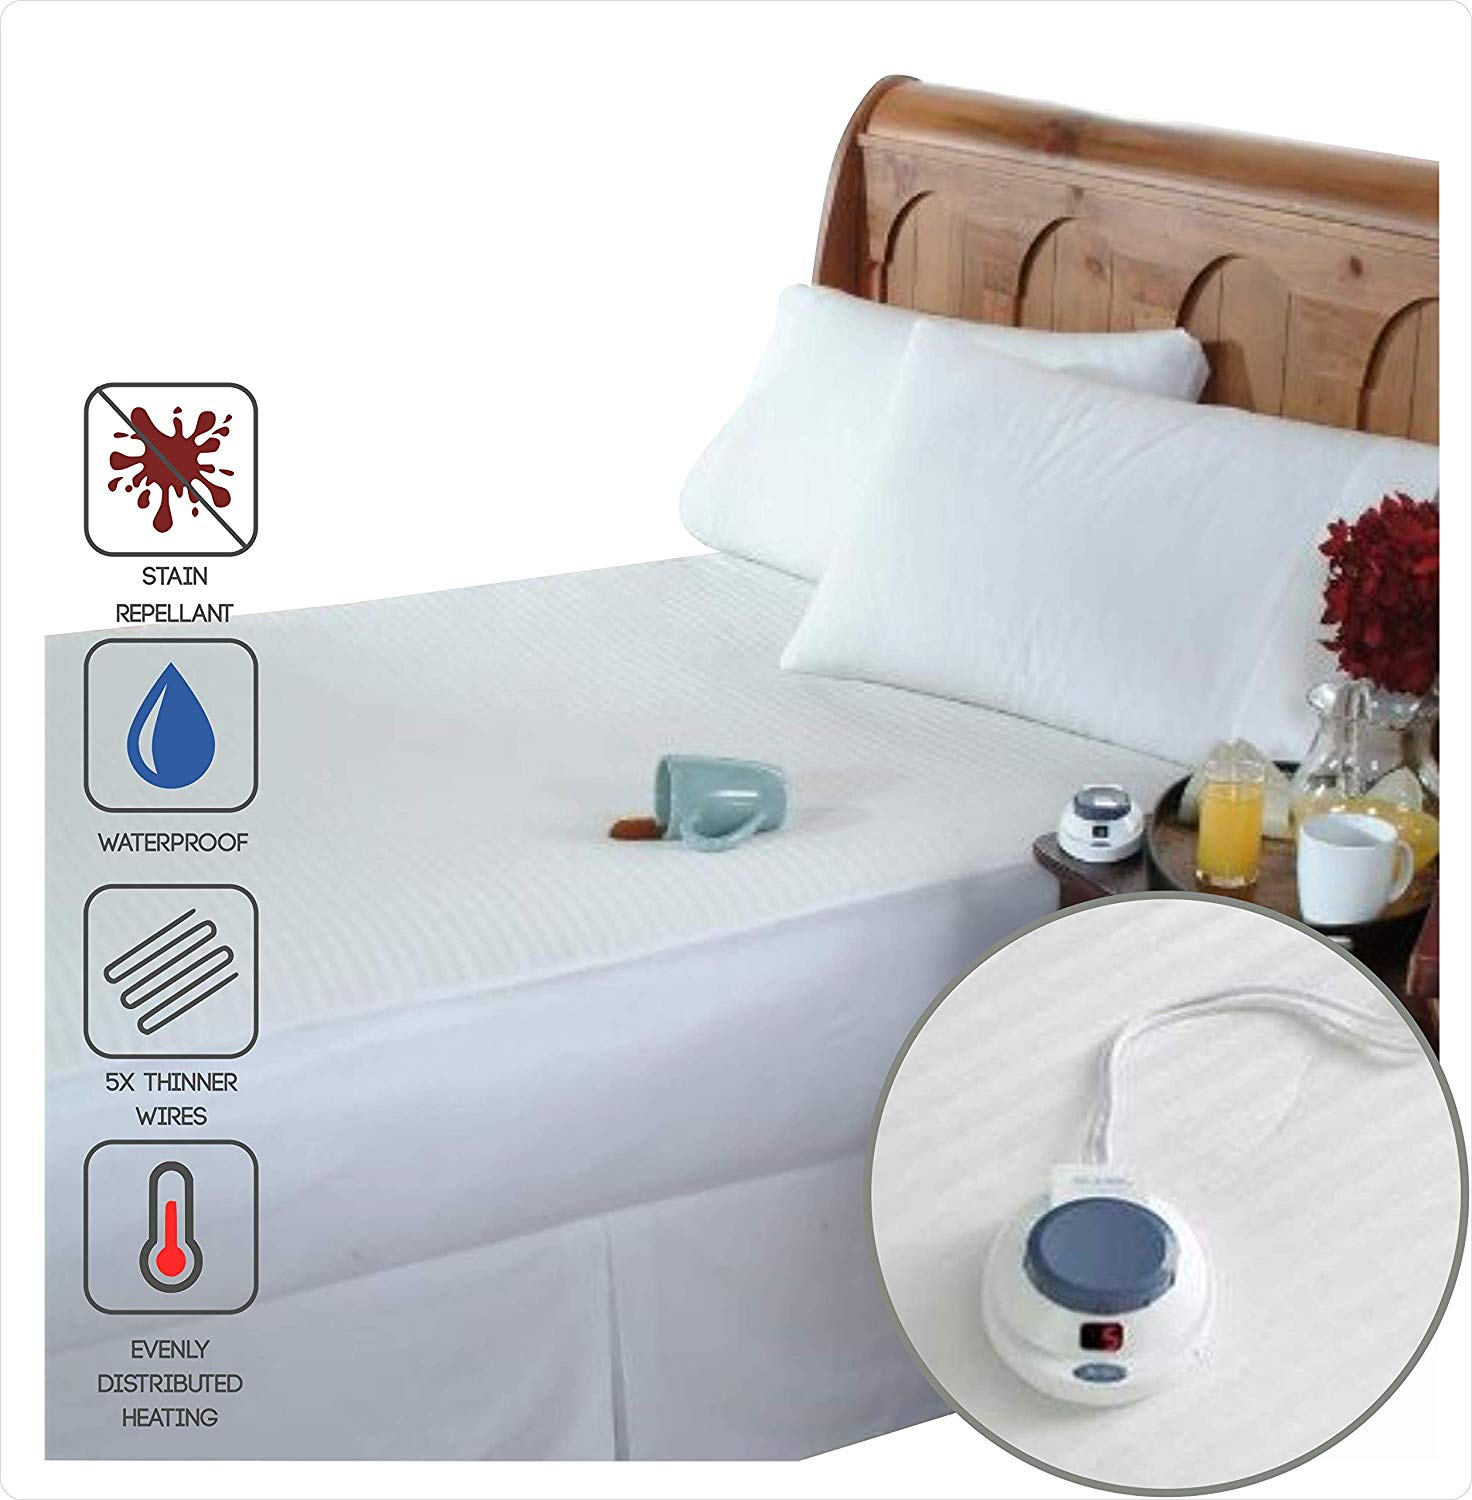 Perfect Fit best heated mattress pad review by www.dailysleep.org